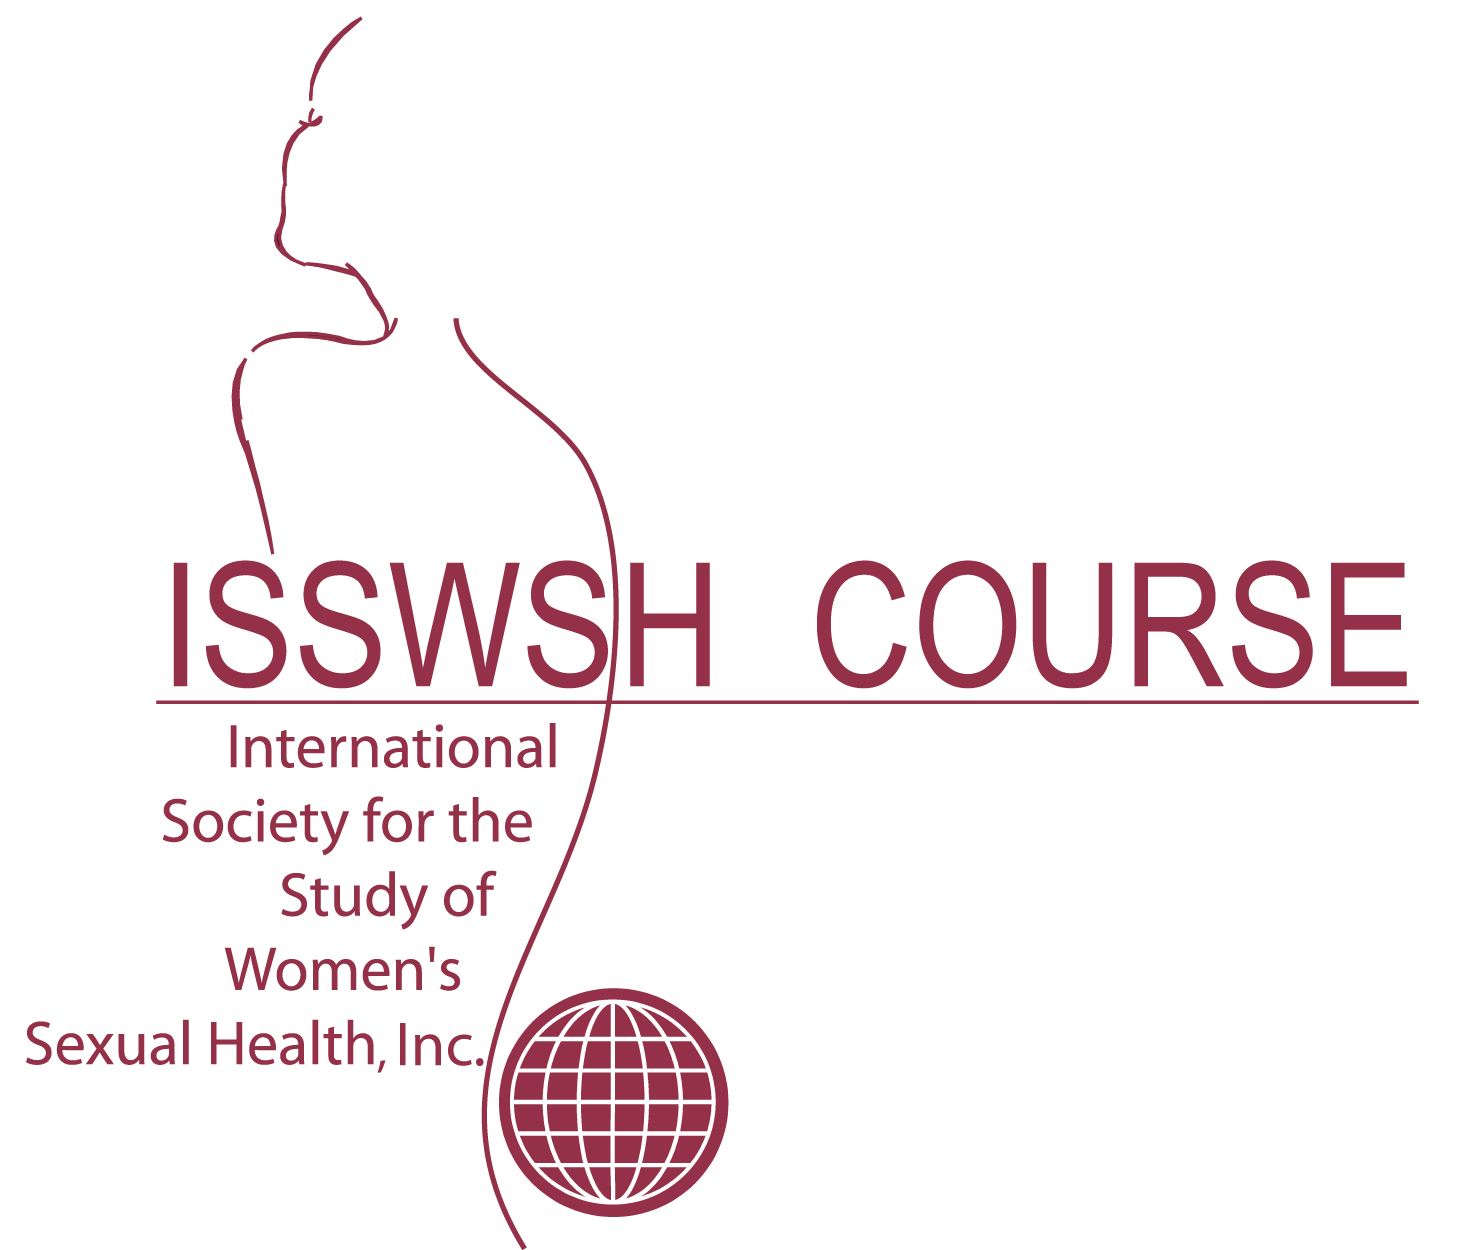 Isswsh Course Cme Information